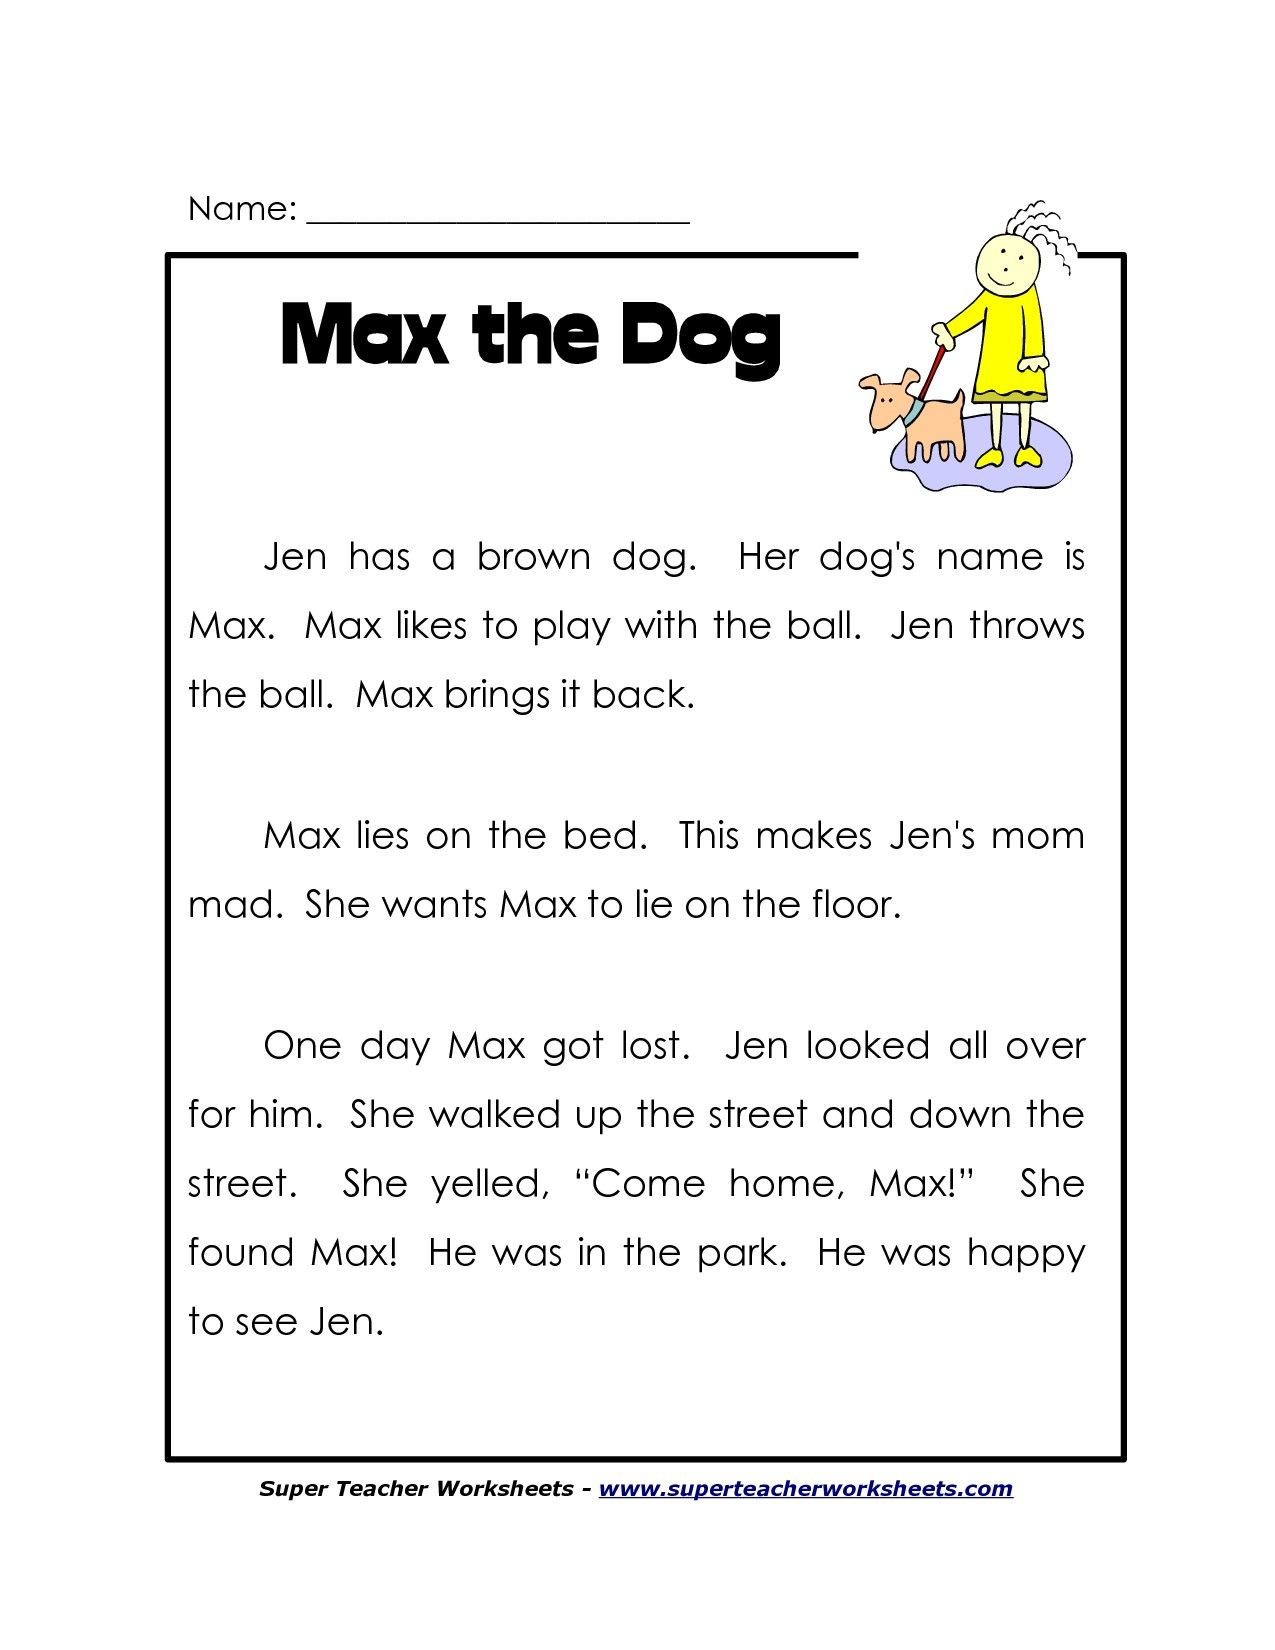 Worksheet Stories For Grade 2 worksheet 2nd grade reading stories noconformity free worksheets 1st grades and on pinterest